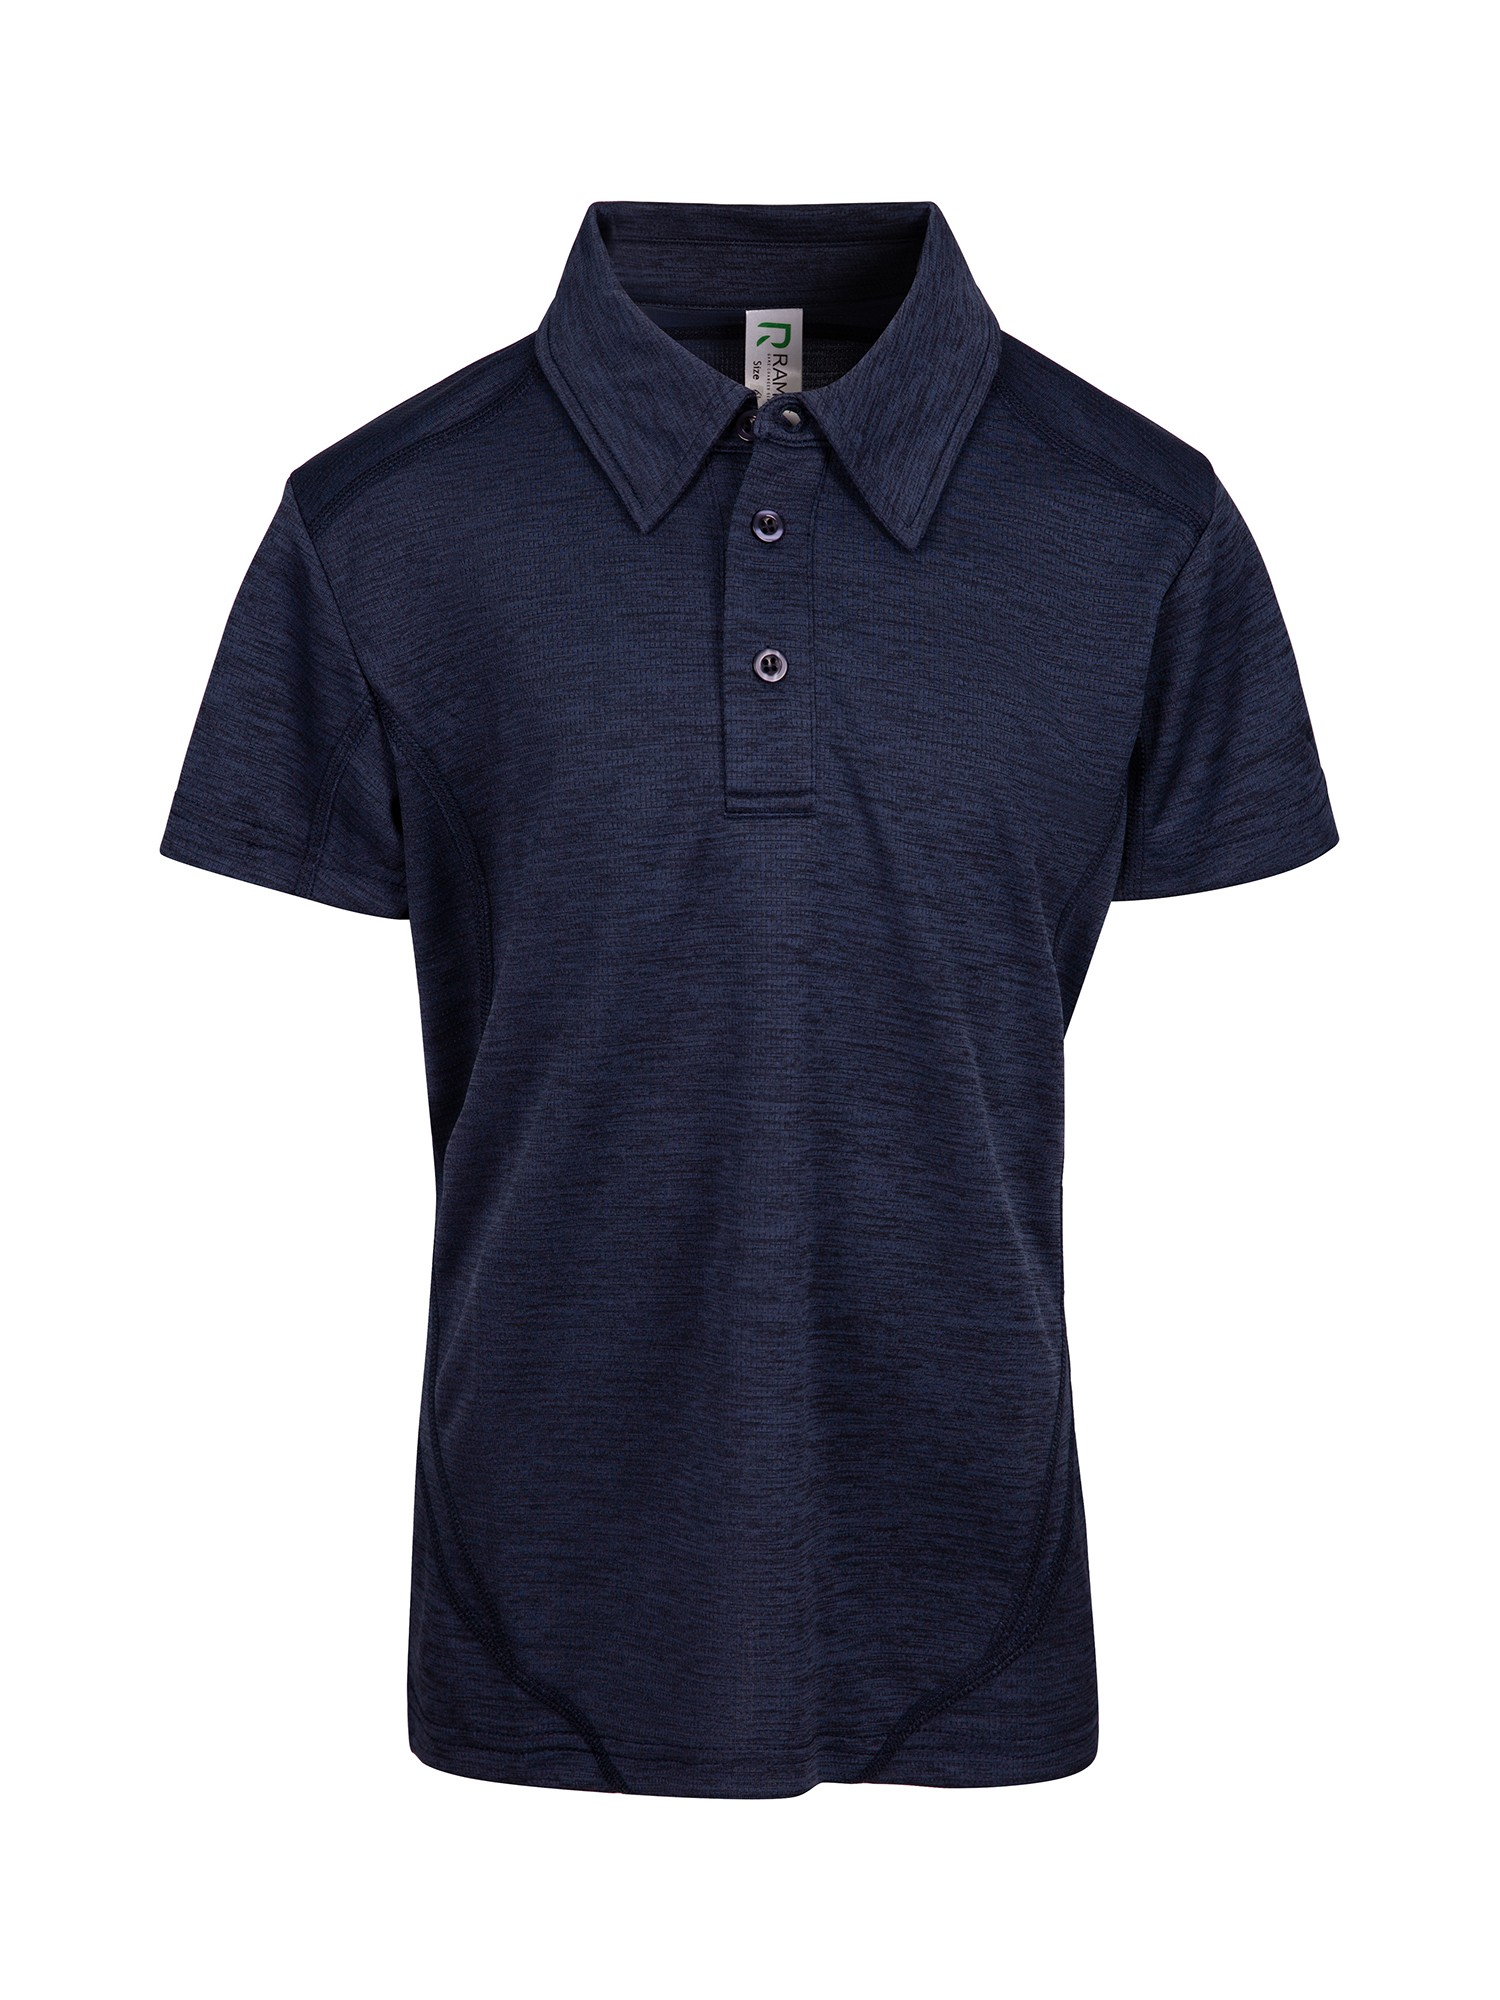 Kid's' Challenger 100% polyester Polo